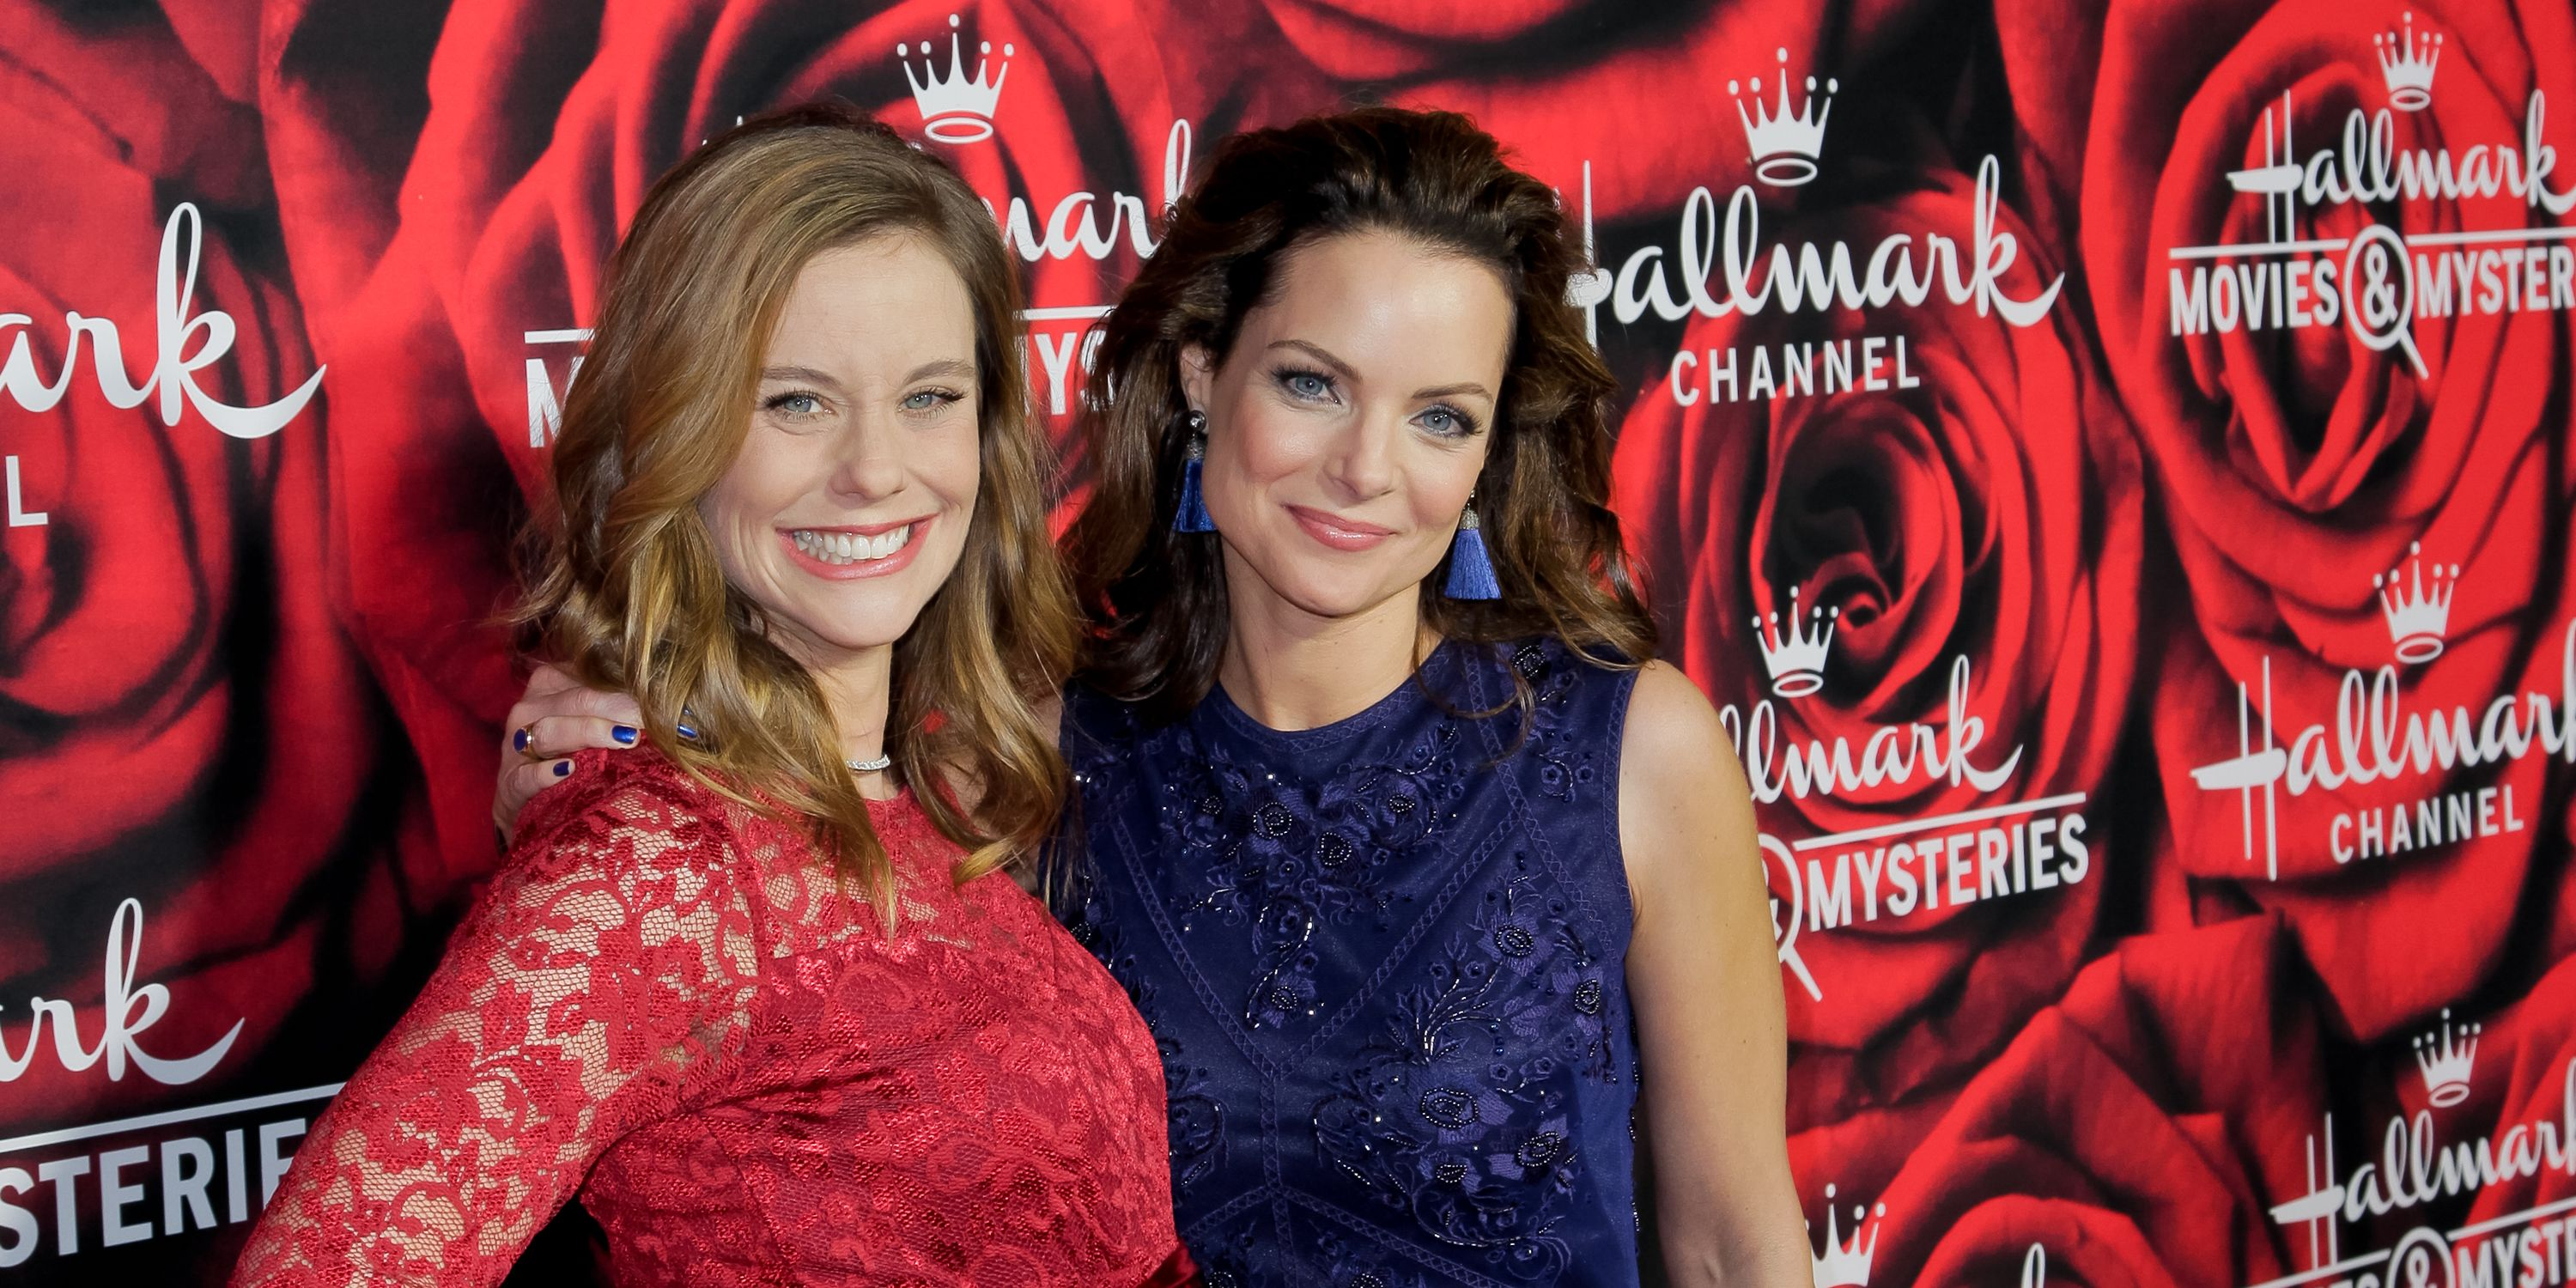 Hallmark Channel And Hallmark Movies And Mysteries Winter 2017 TCA Press Tour - Arrivals